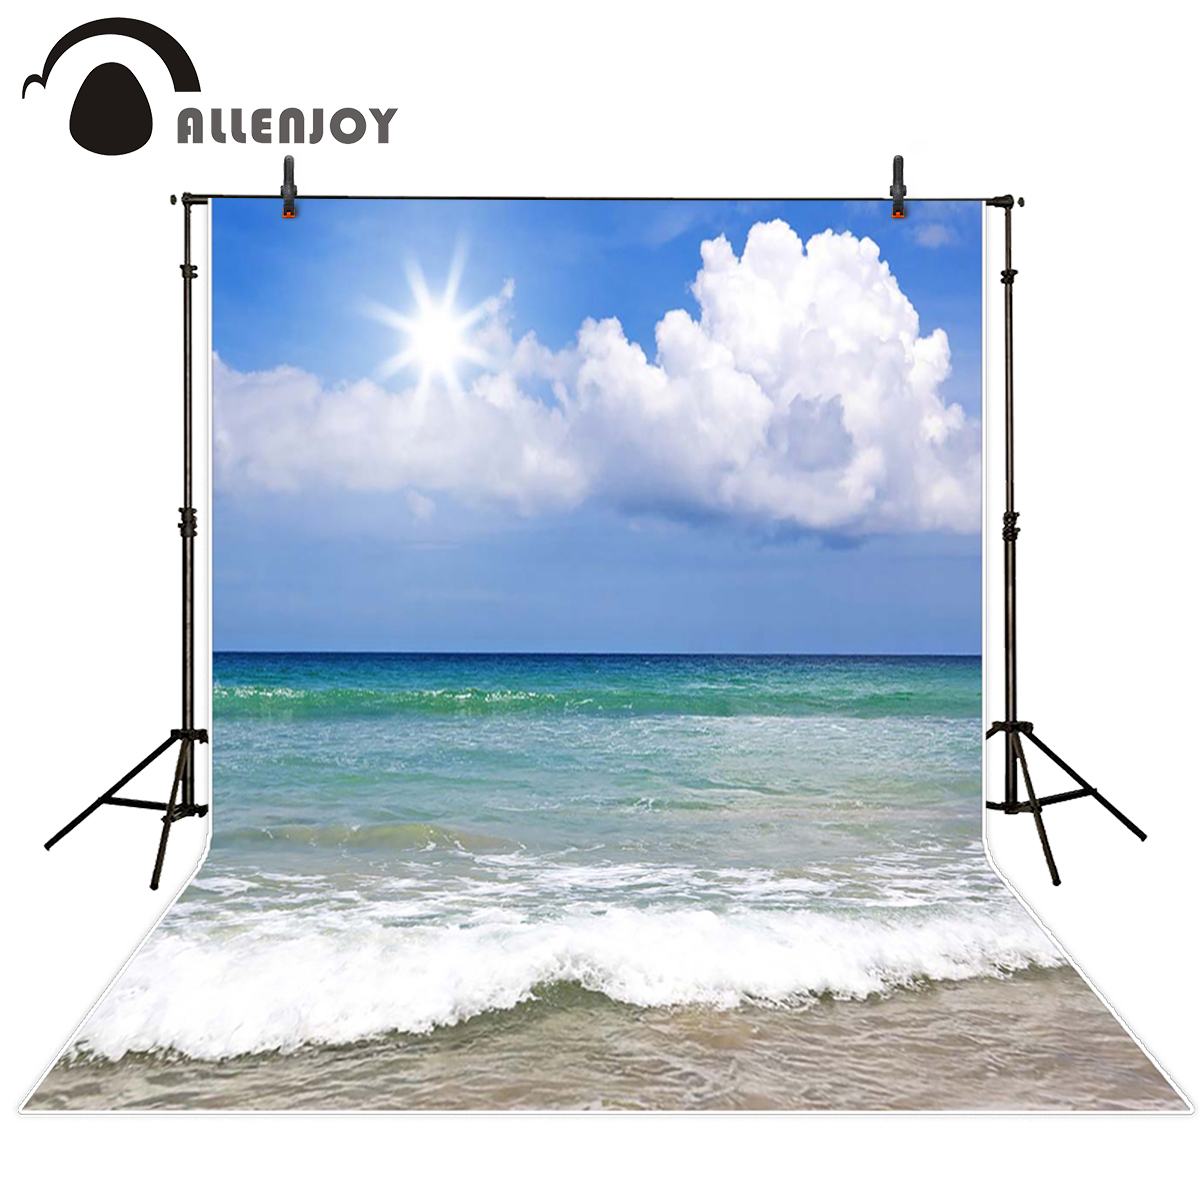 Allenjoy scenic Photo background Sun cloud real sea waves sky photography backdrops foto backgrounds for photo studio